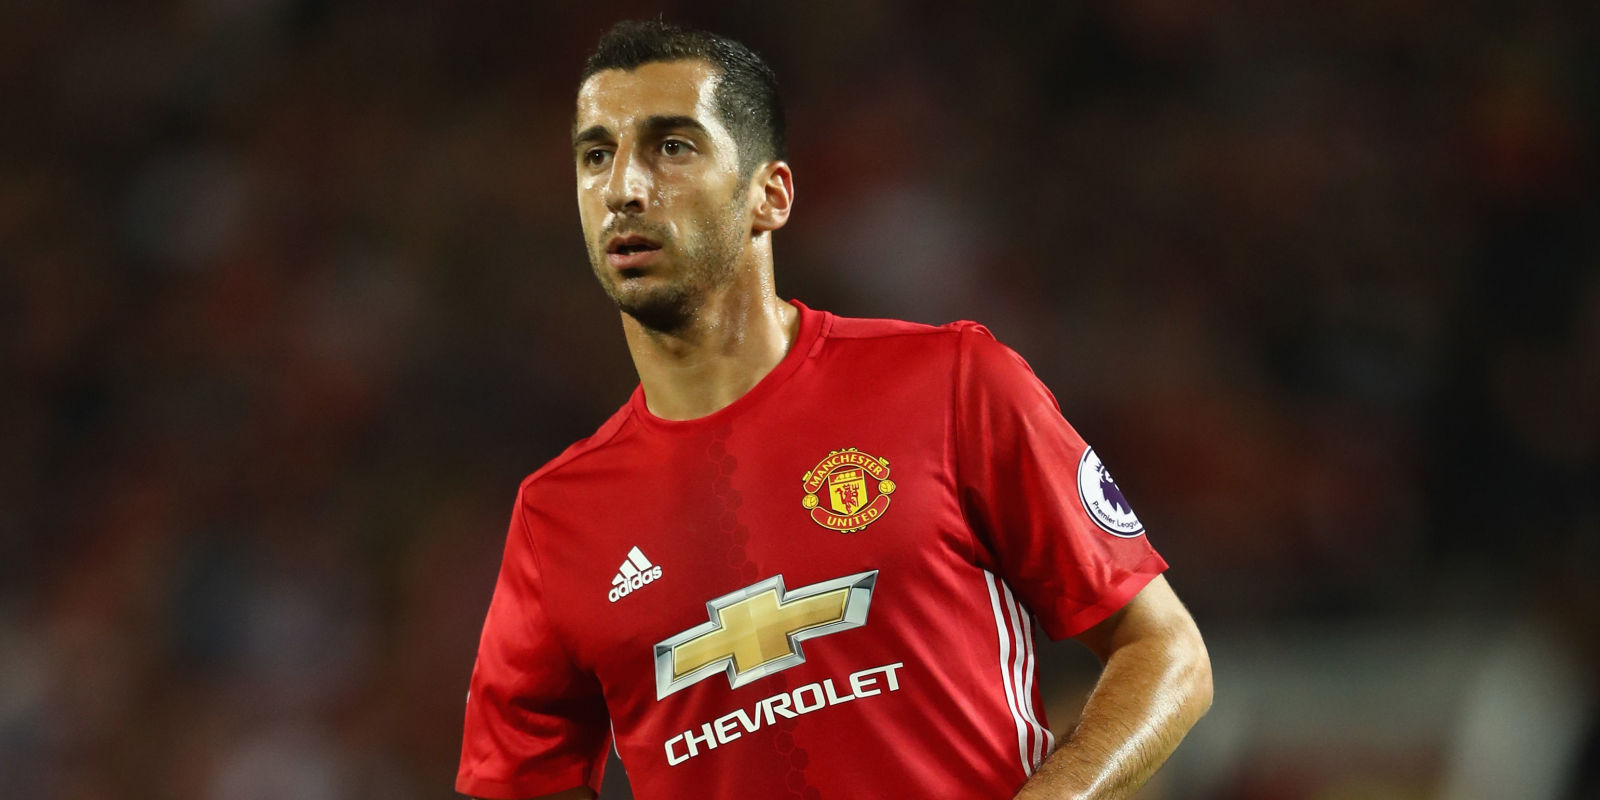 Man United Fans Create Excellent New Chant For Henrikh Mkhitaryan